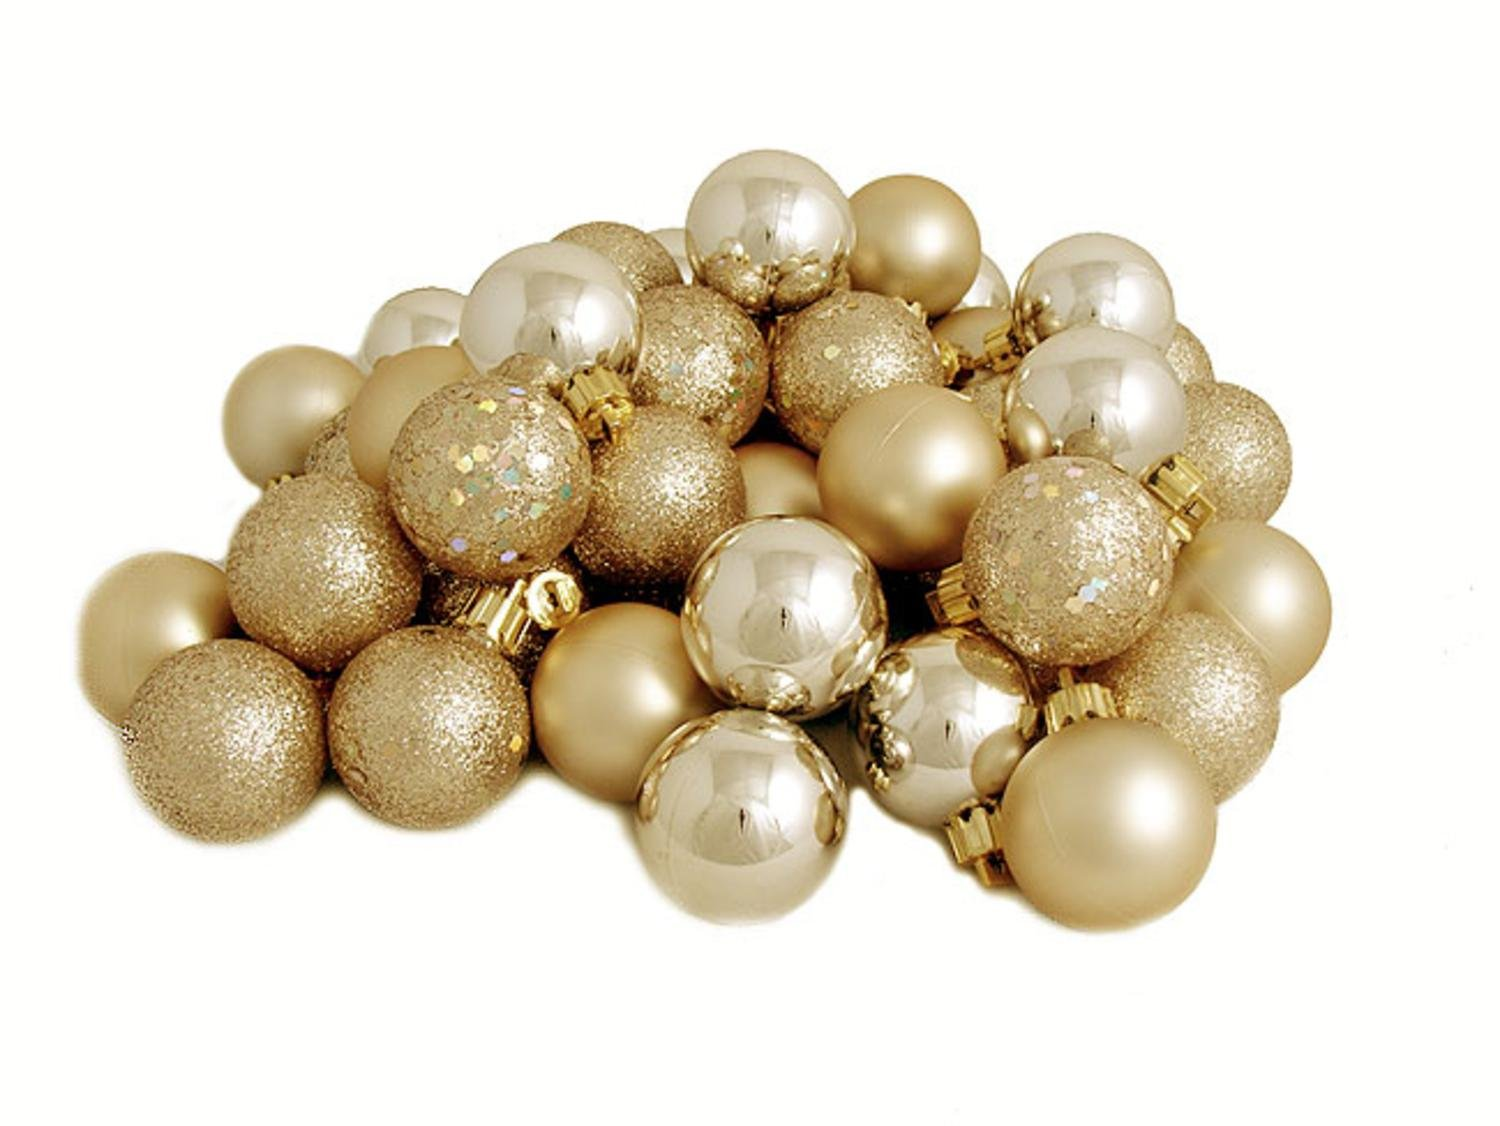 Amazon.com: 32ct Champagne Shatterproof 4-Finish Christmas Ball ...